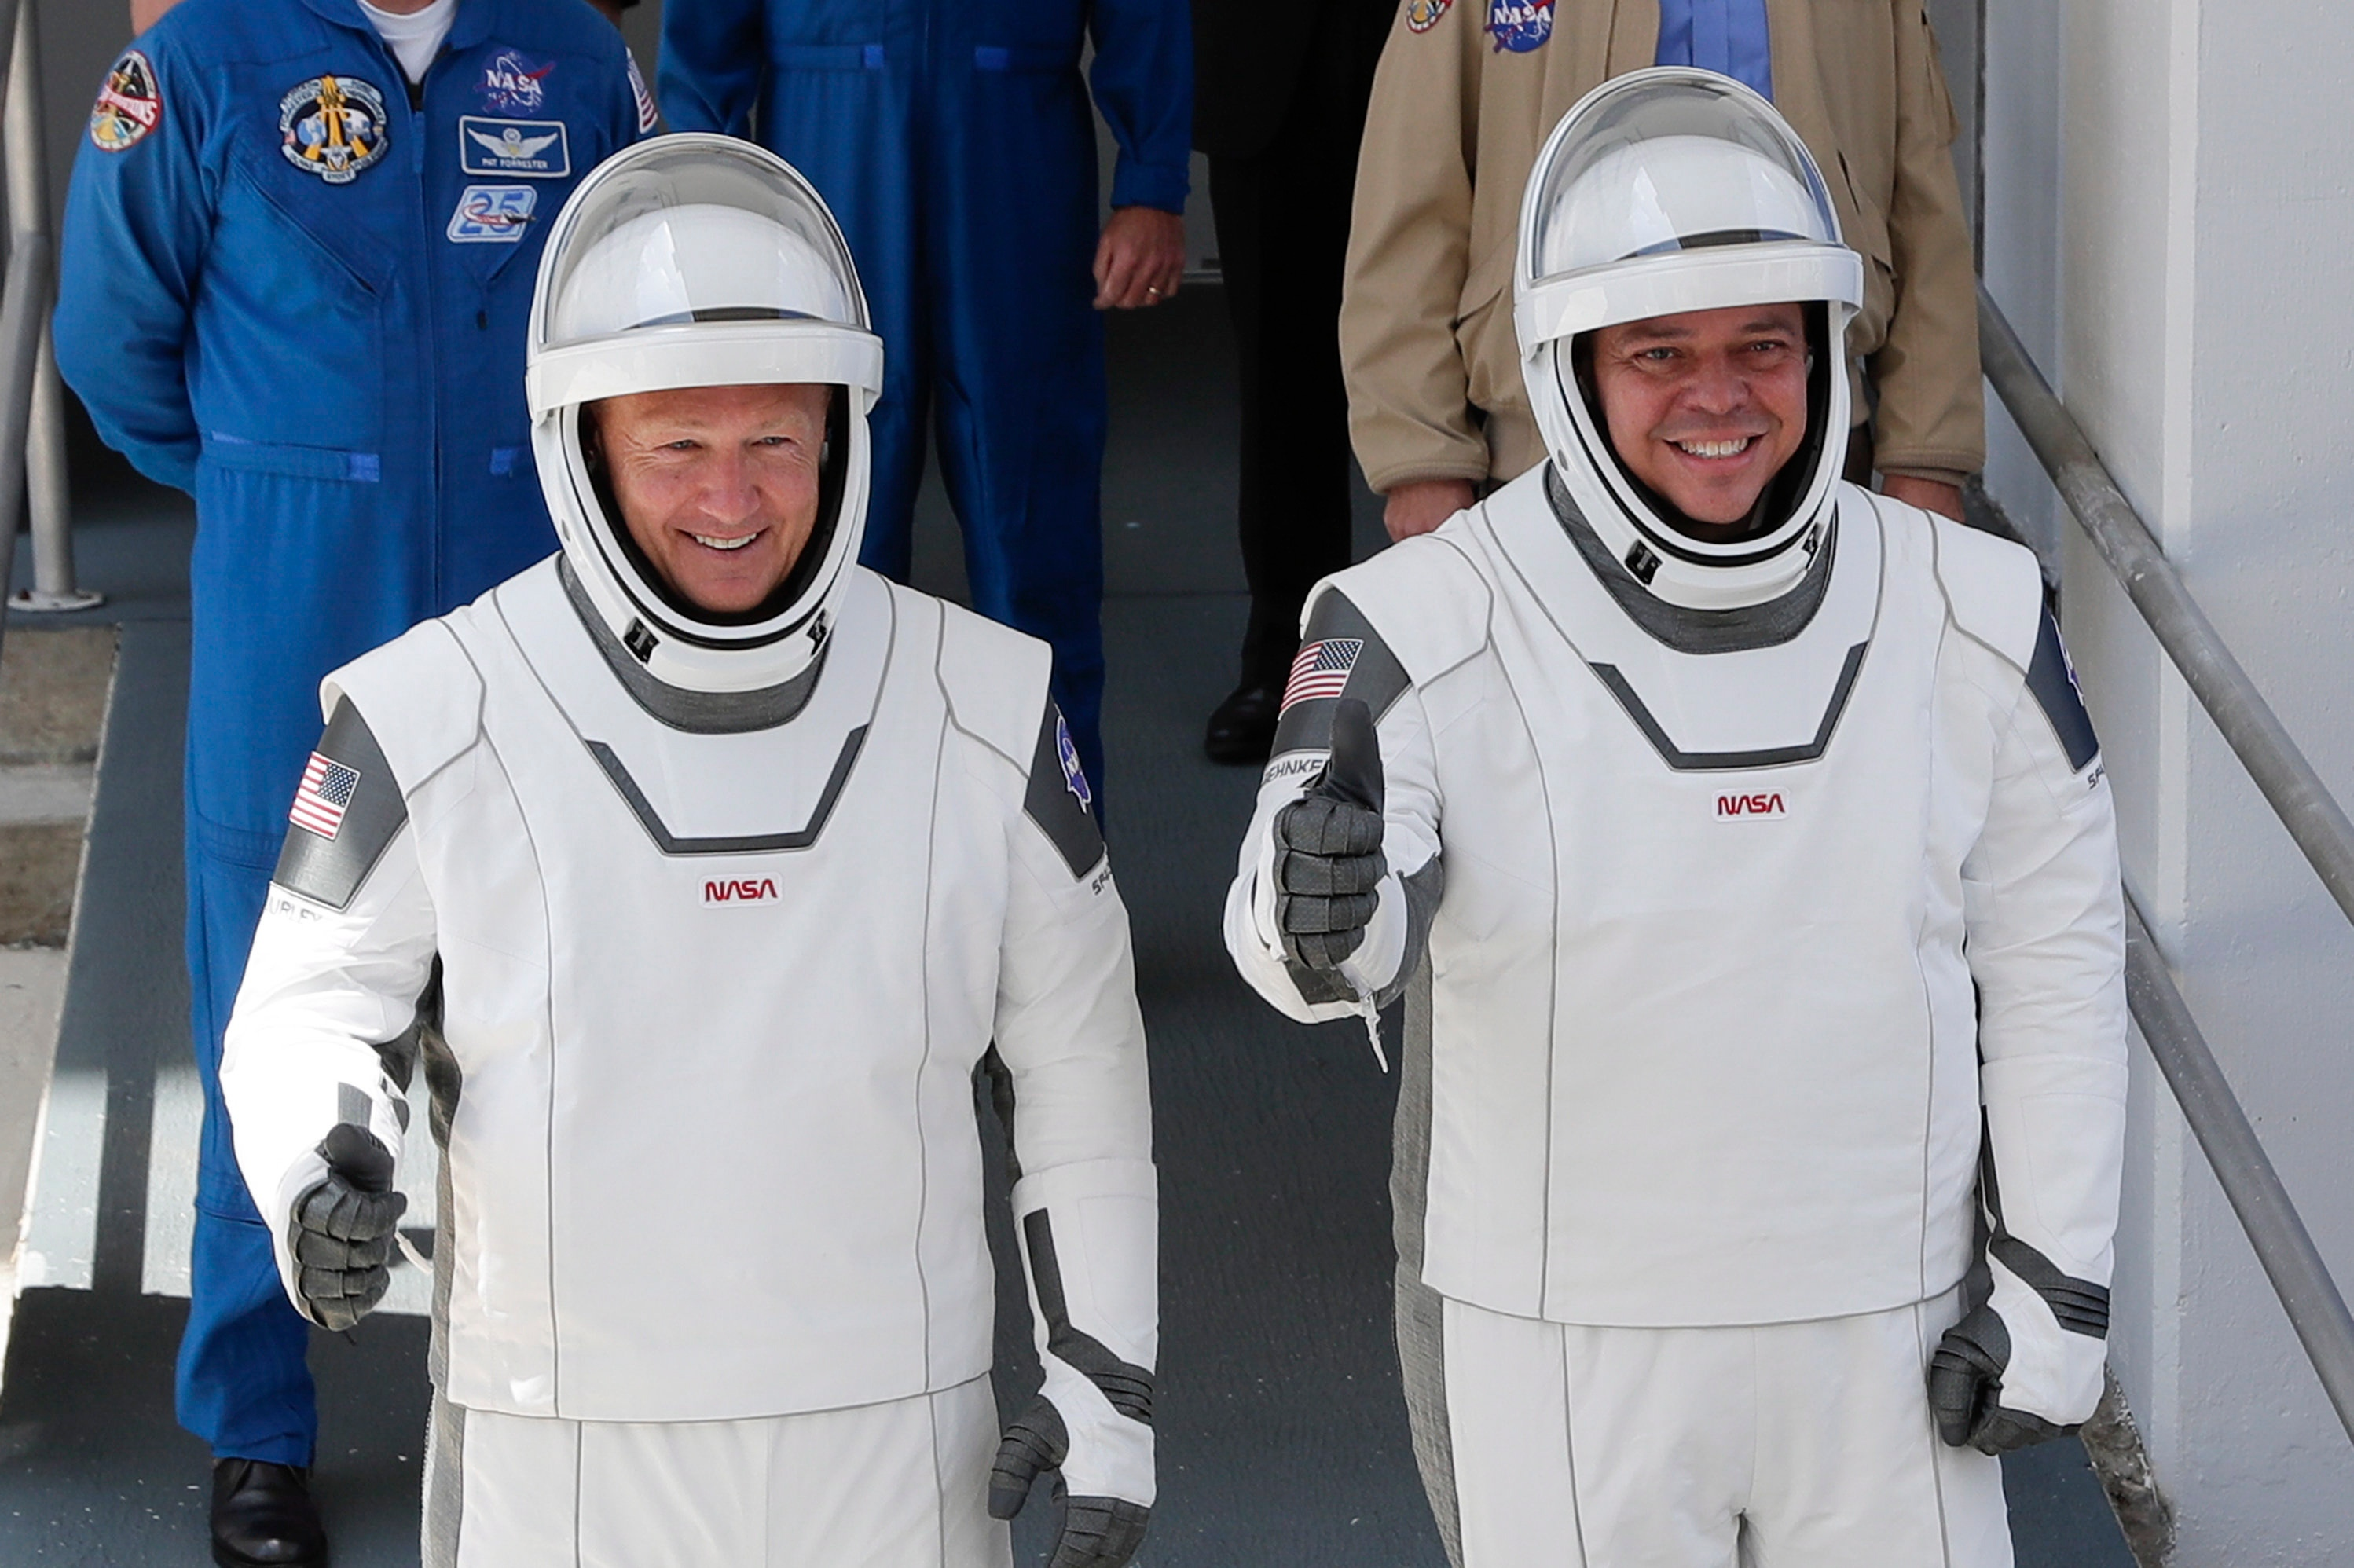 NASA's Astronauts Are Buddies And Their Wives Are Astronaut Too